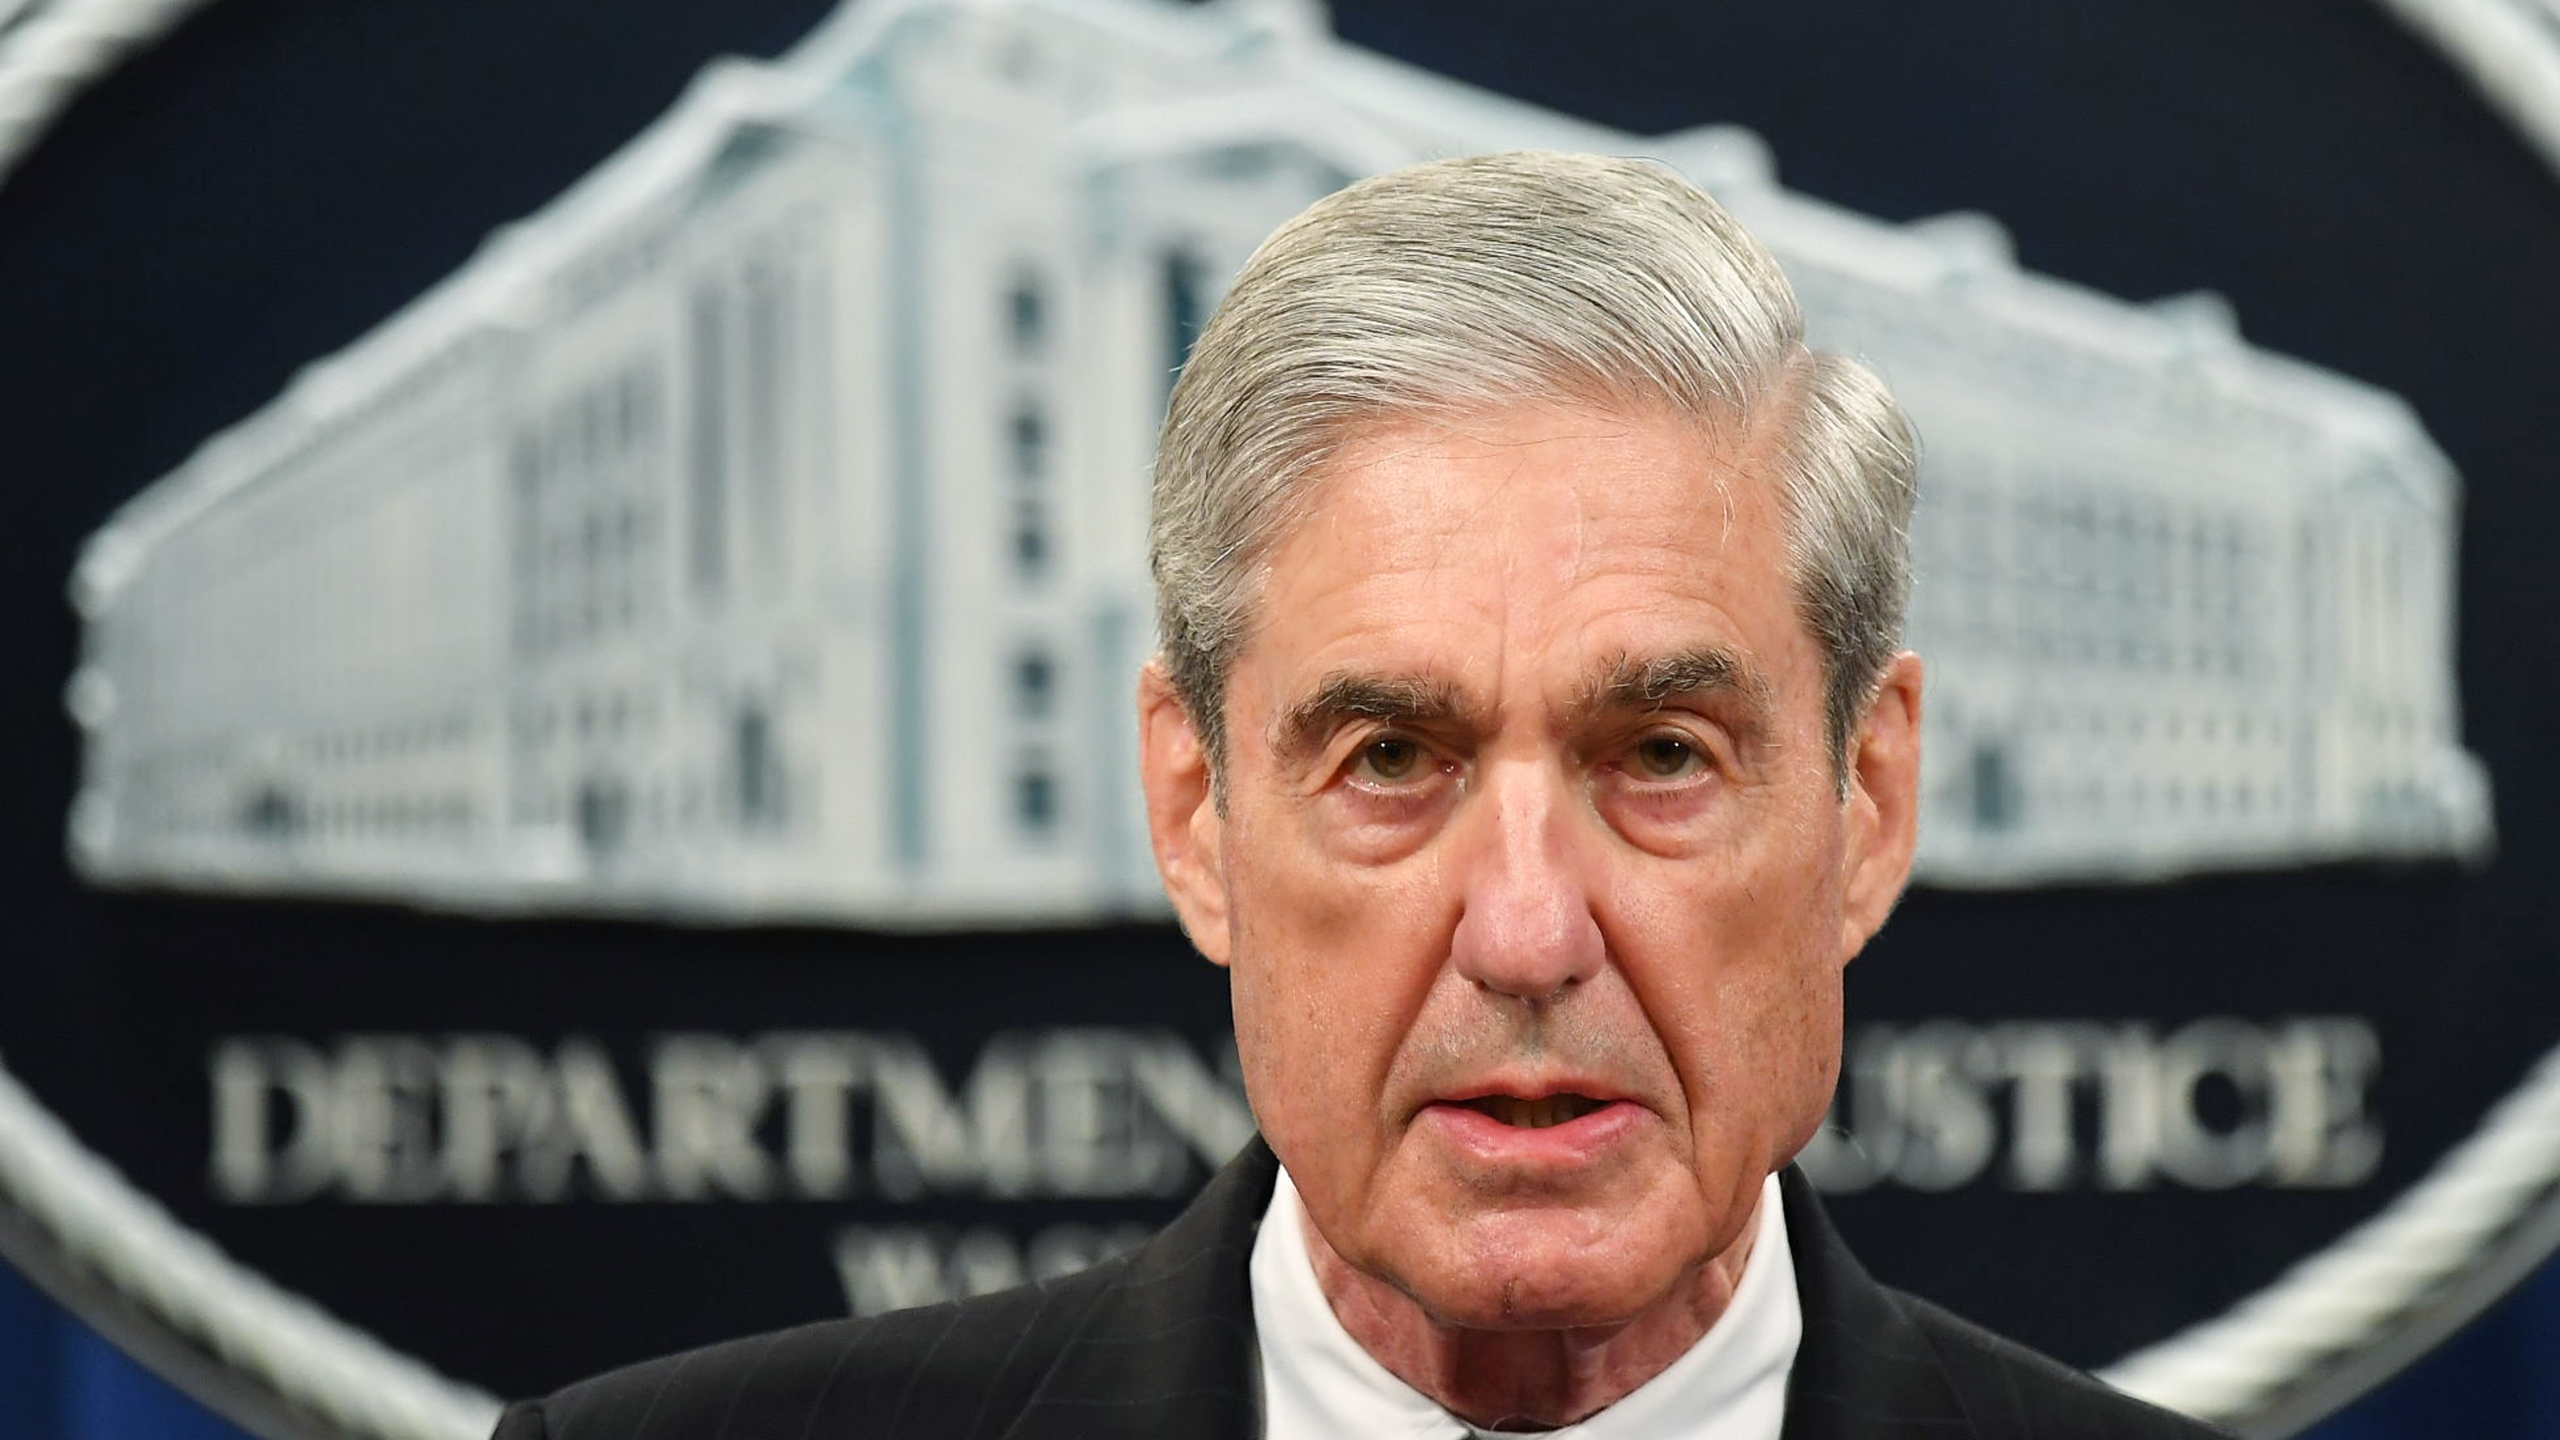 Special Counsel Robert Mueller speaks on the investigation into Russian interference in the 2016 Presidential election, at the Justice Department in Washington, DC, on May 29, 2019. (Credit: MANDEL NGAN/AFP/Getty Images)